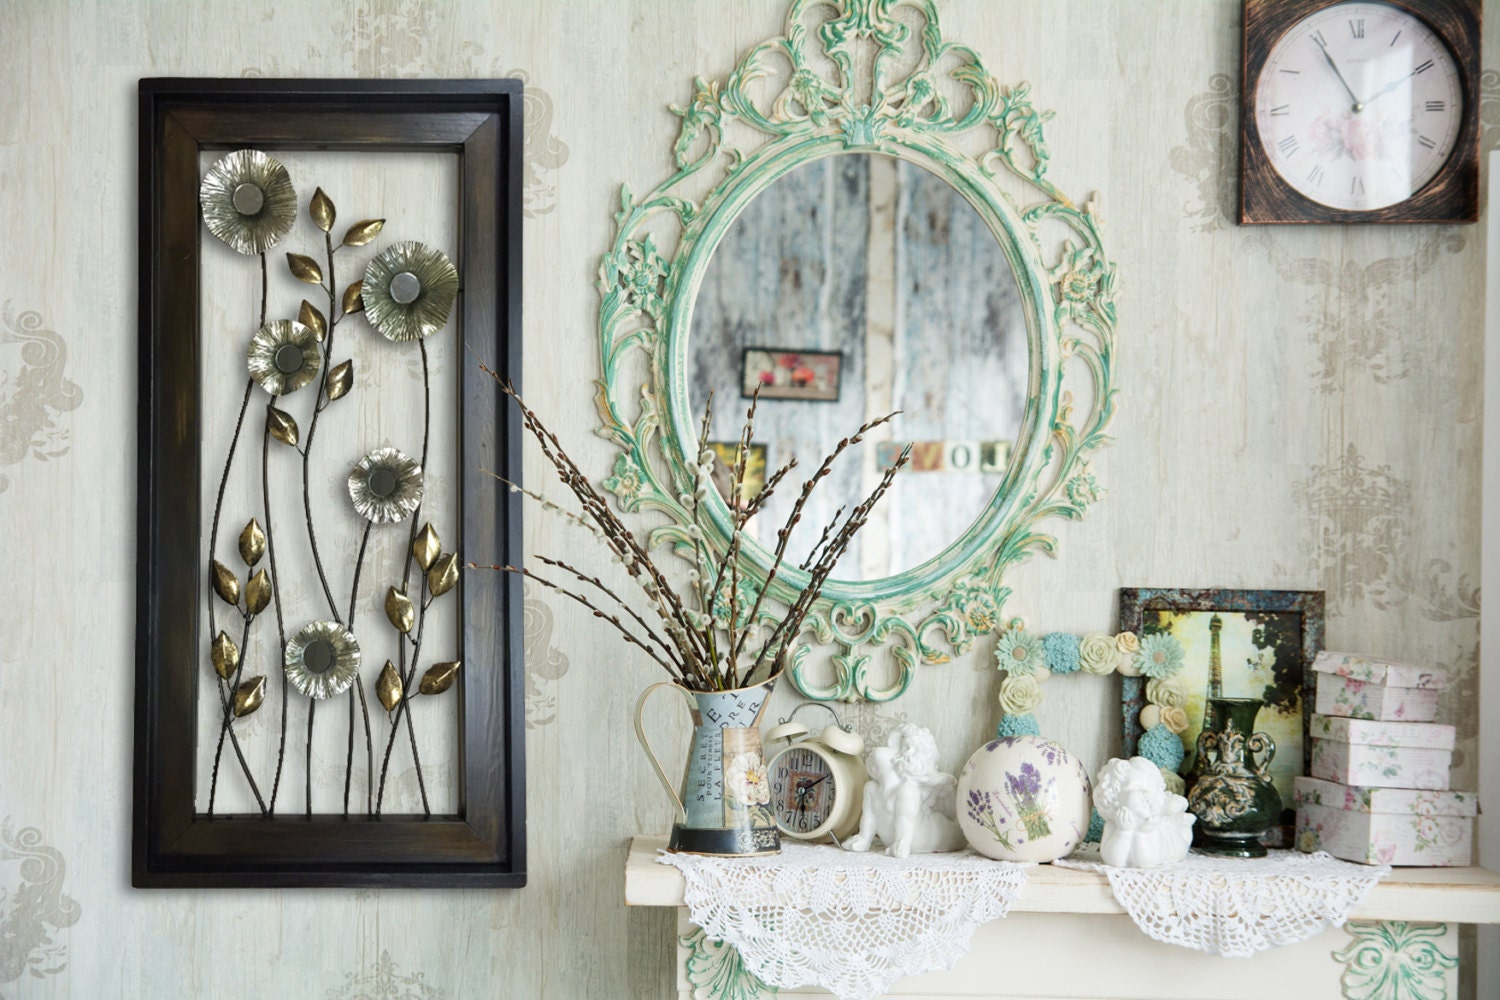 Gold Metal Wall Mirror: METAL Wall ART Wood Framed FLOWERS Mirrors Home Decor